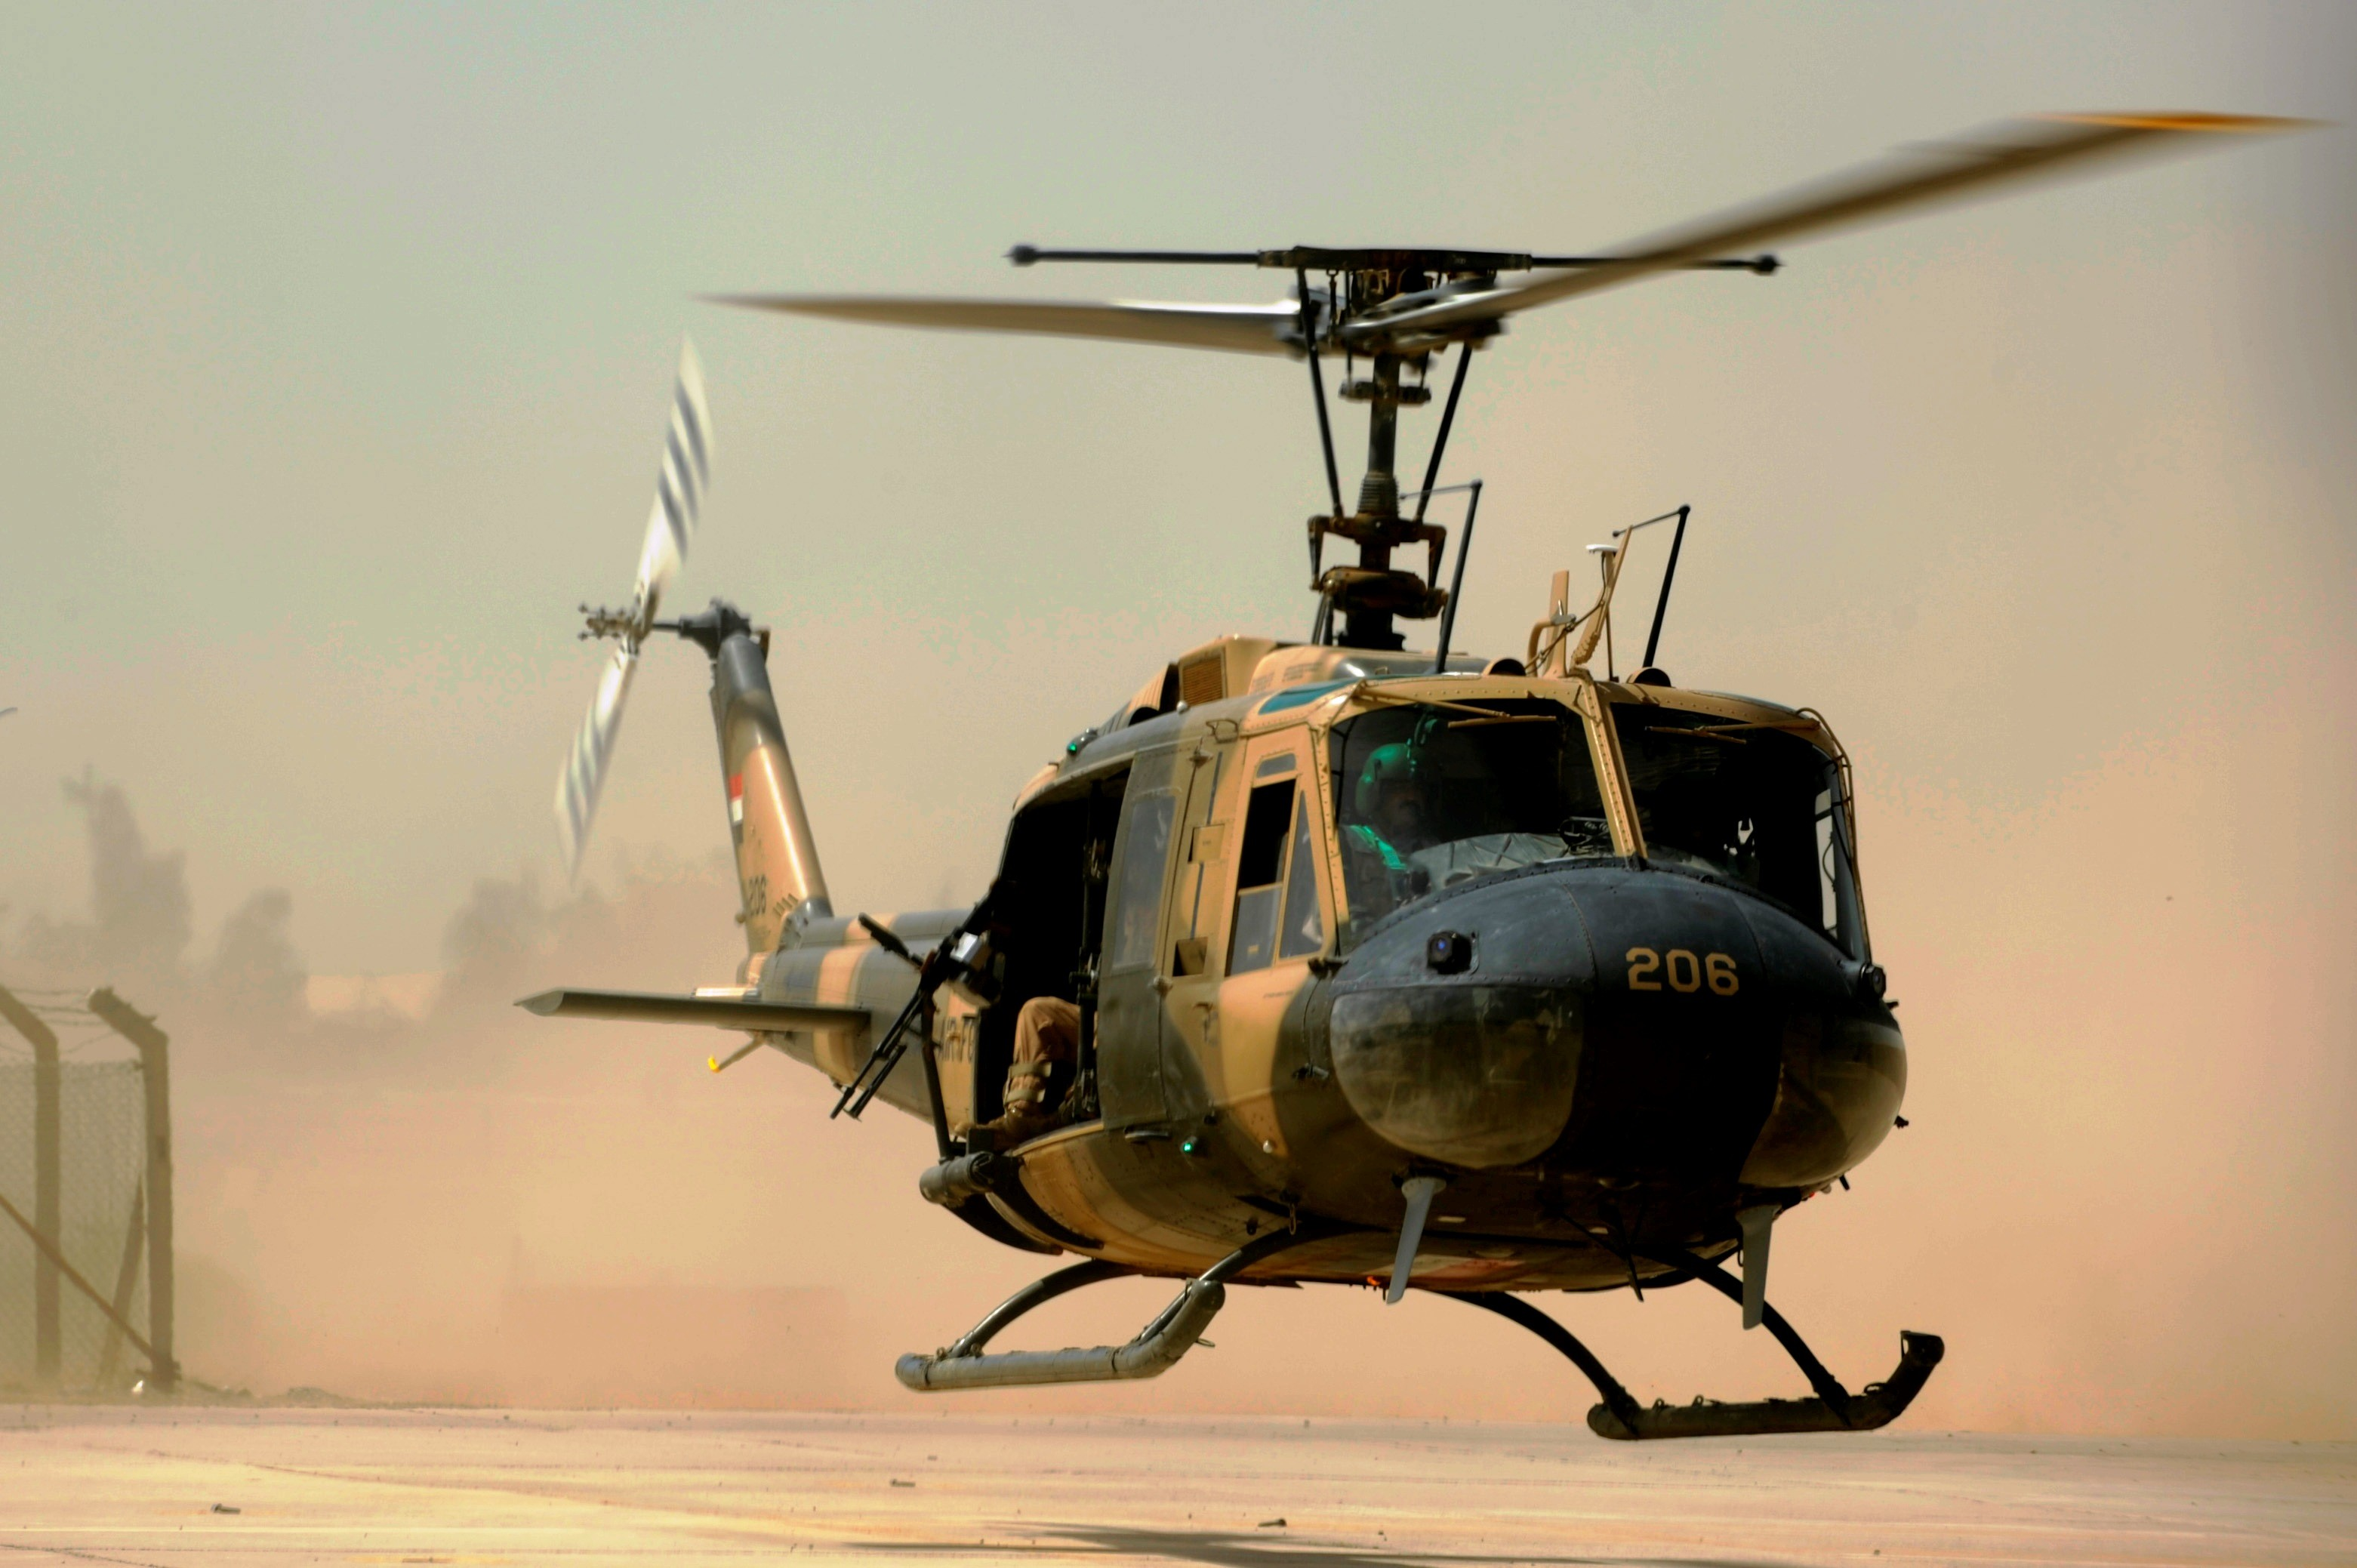 Res: 3122x2077, File:Iraqi air force UH-1H II Huey helicopter.JPG